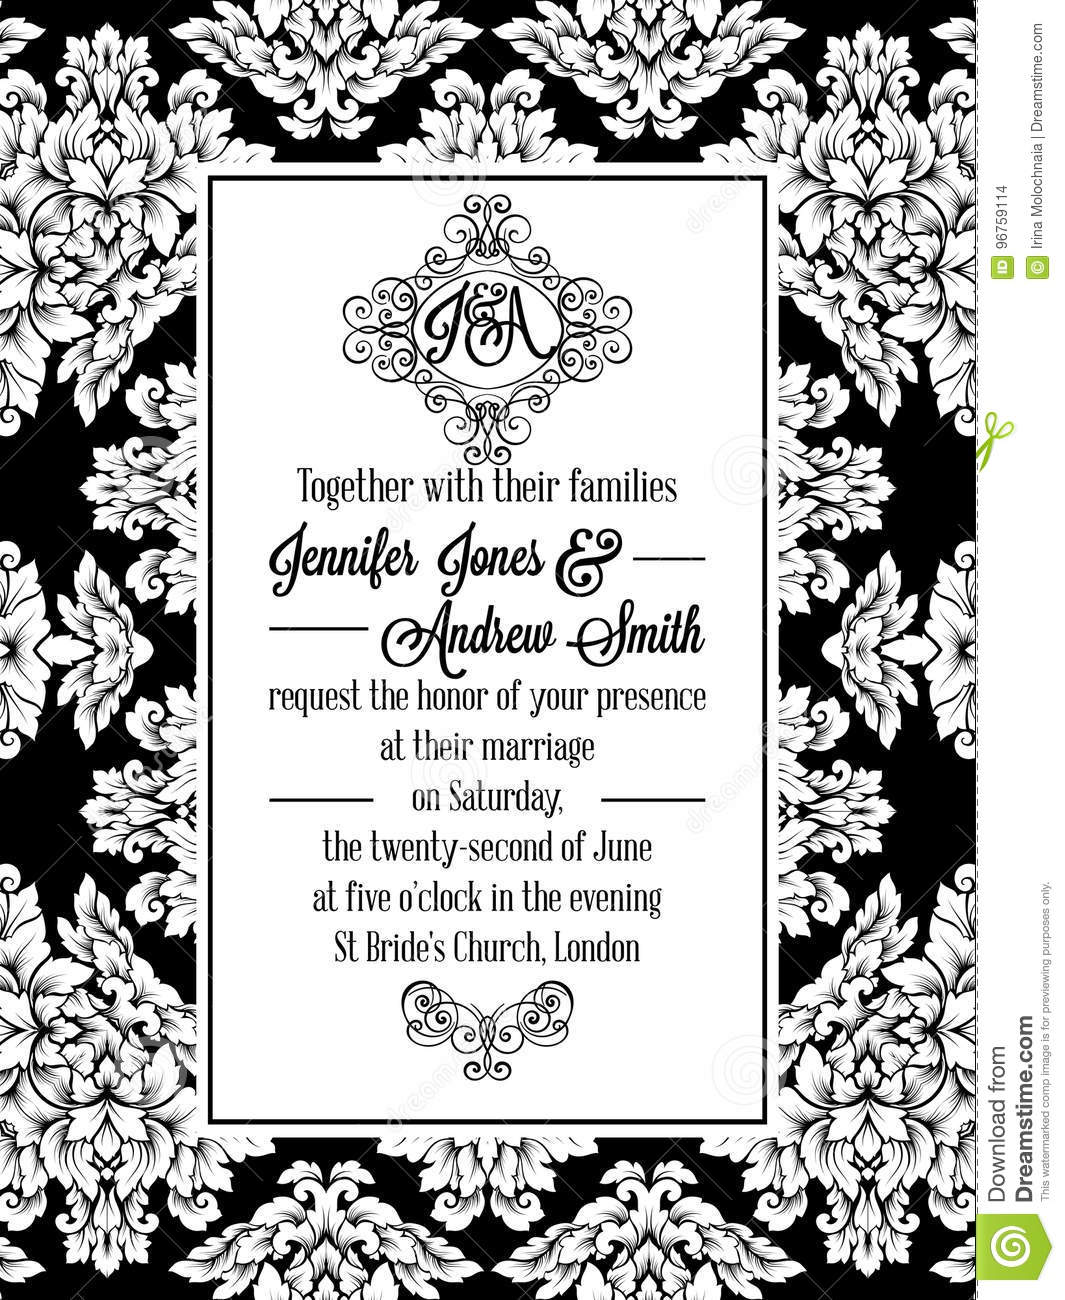 Vintage delicate formal invitation card stock vector illustration vintage delicate formal invitation card with black and white lacy design for wedding marriage bridal baroque style flourish decoration stopboris Image collections